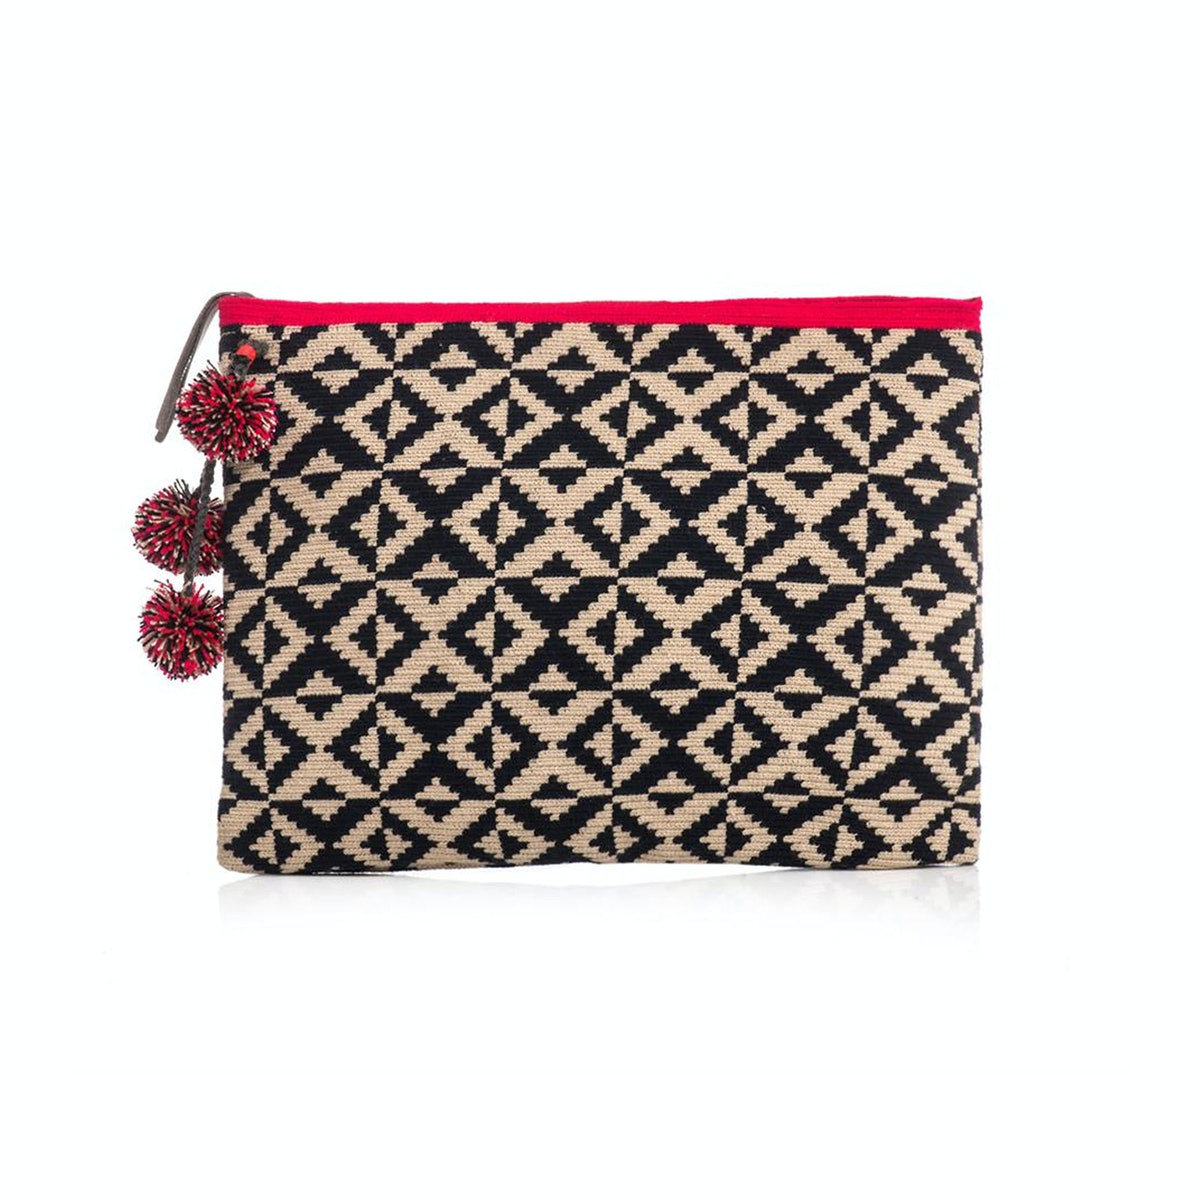 Sophie Anderson pouch